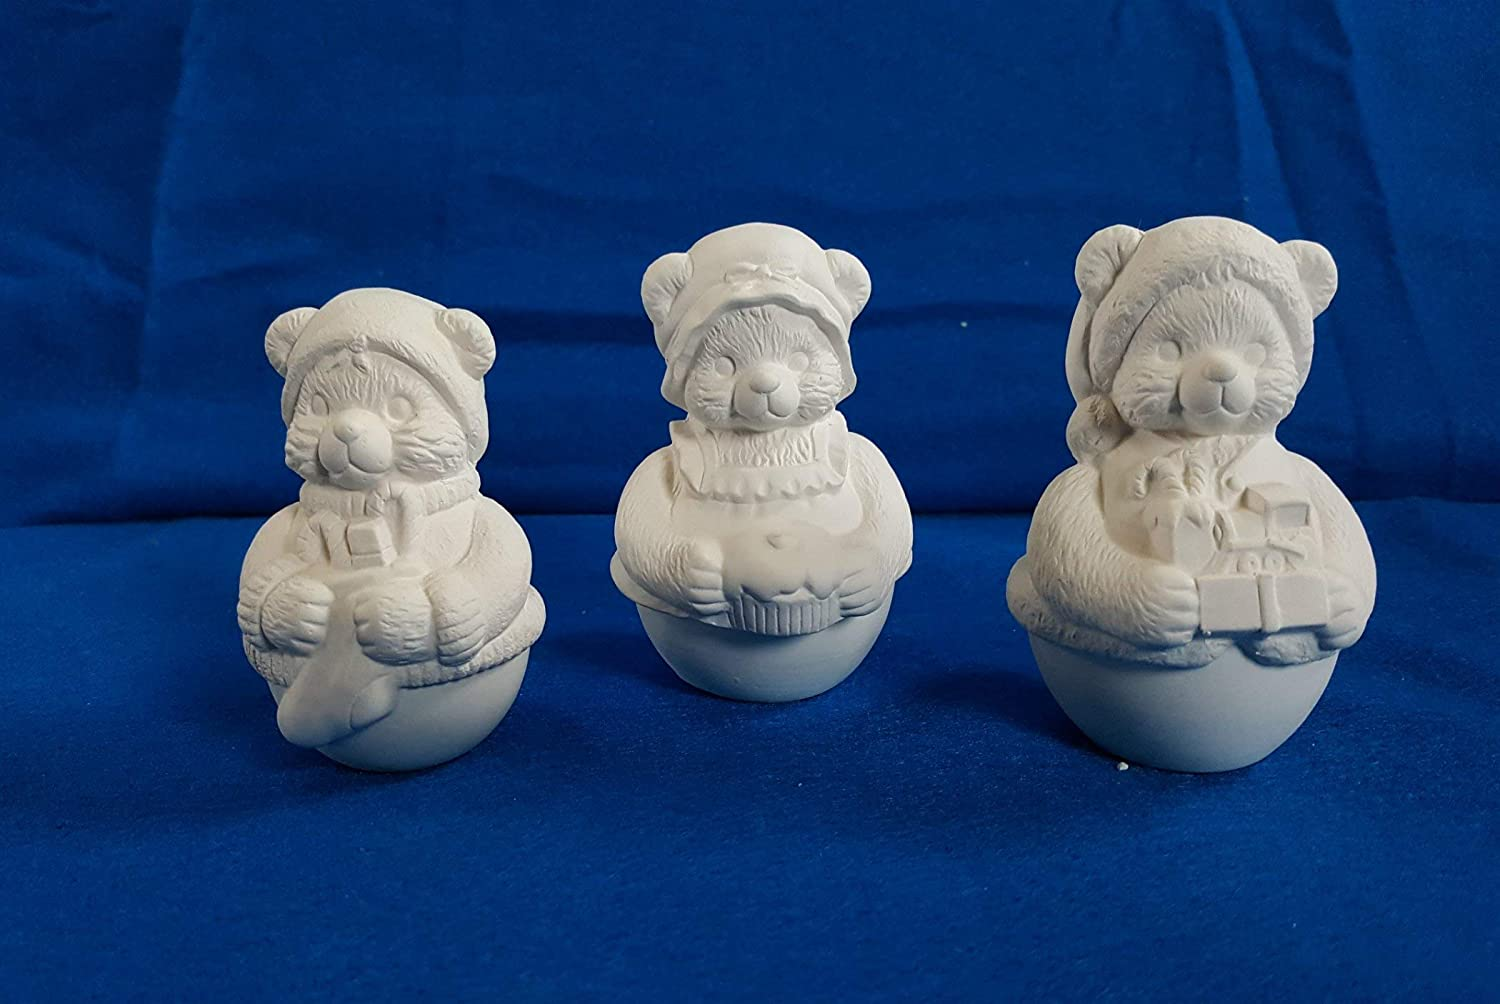 3 Roly Poly Bear Figurine unpainted ceramic bisque ready to be painted